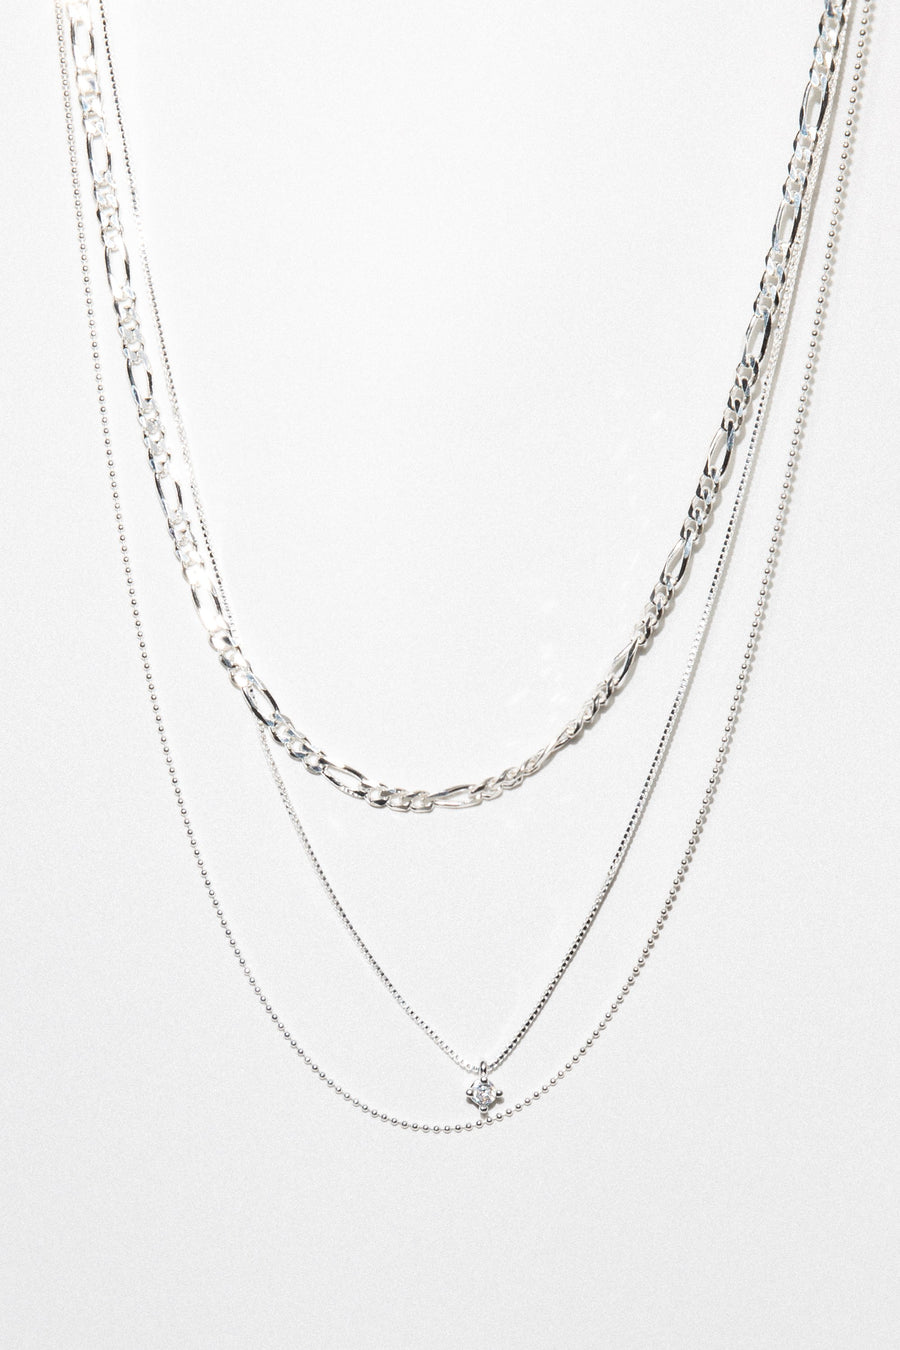 Dona Italia Jewelry Silver / 16 Inches Copy of Gilded Layered Necklace